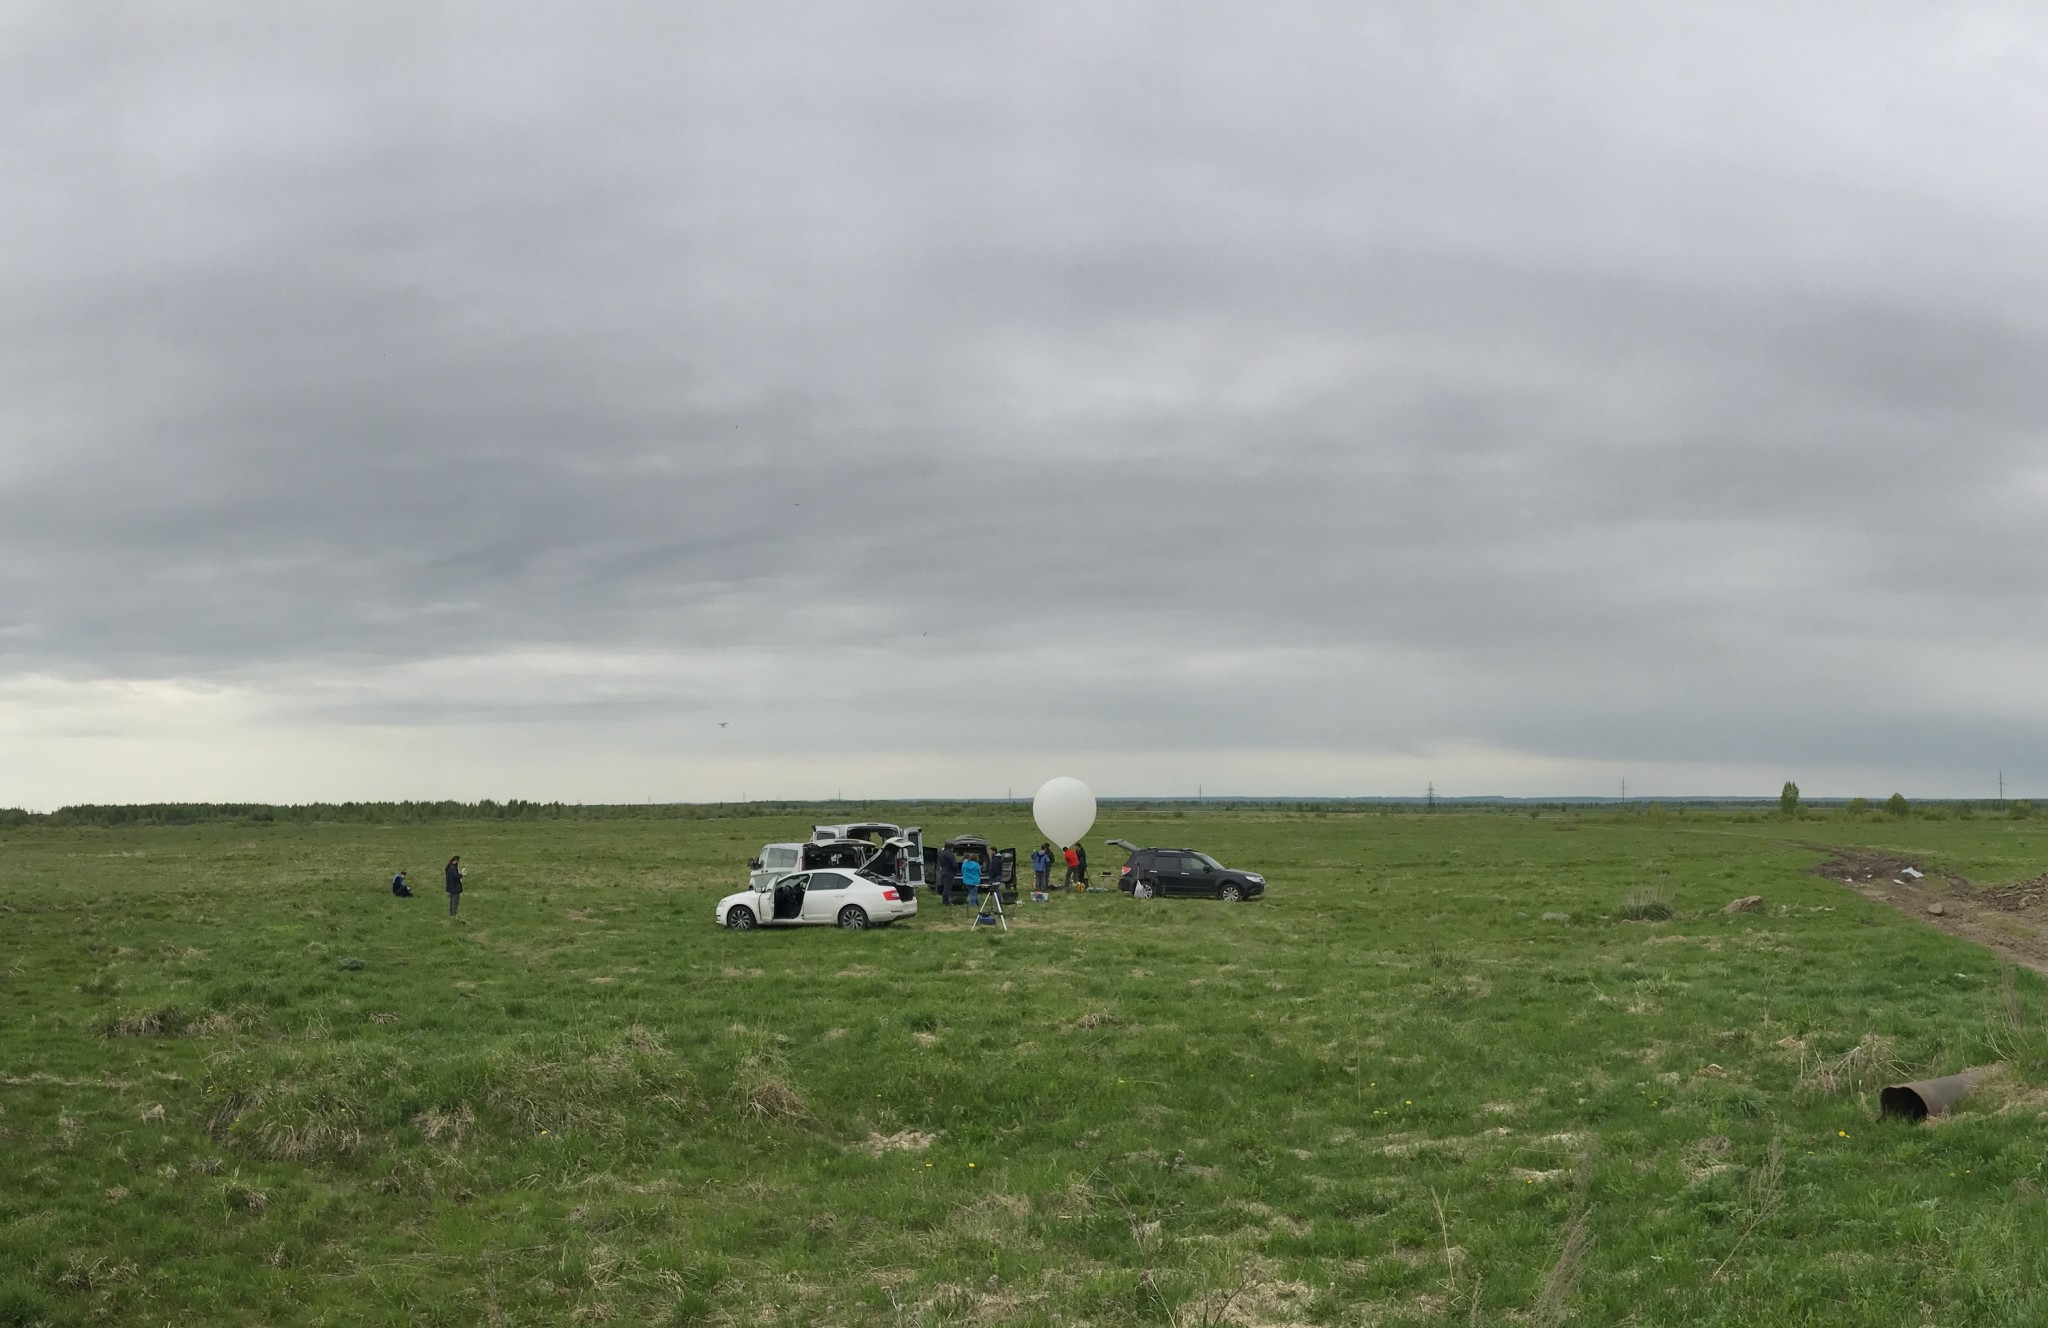 A desolate field in the Yaroslav Region served as the unlikely launch point for two Skoltech stratospheric balloon missions. Photo: Skoltech.